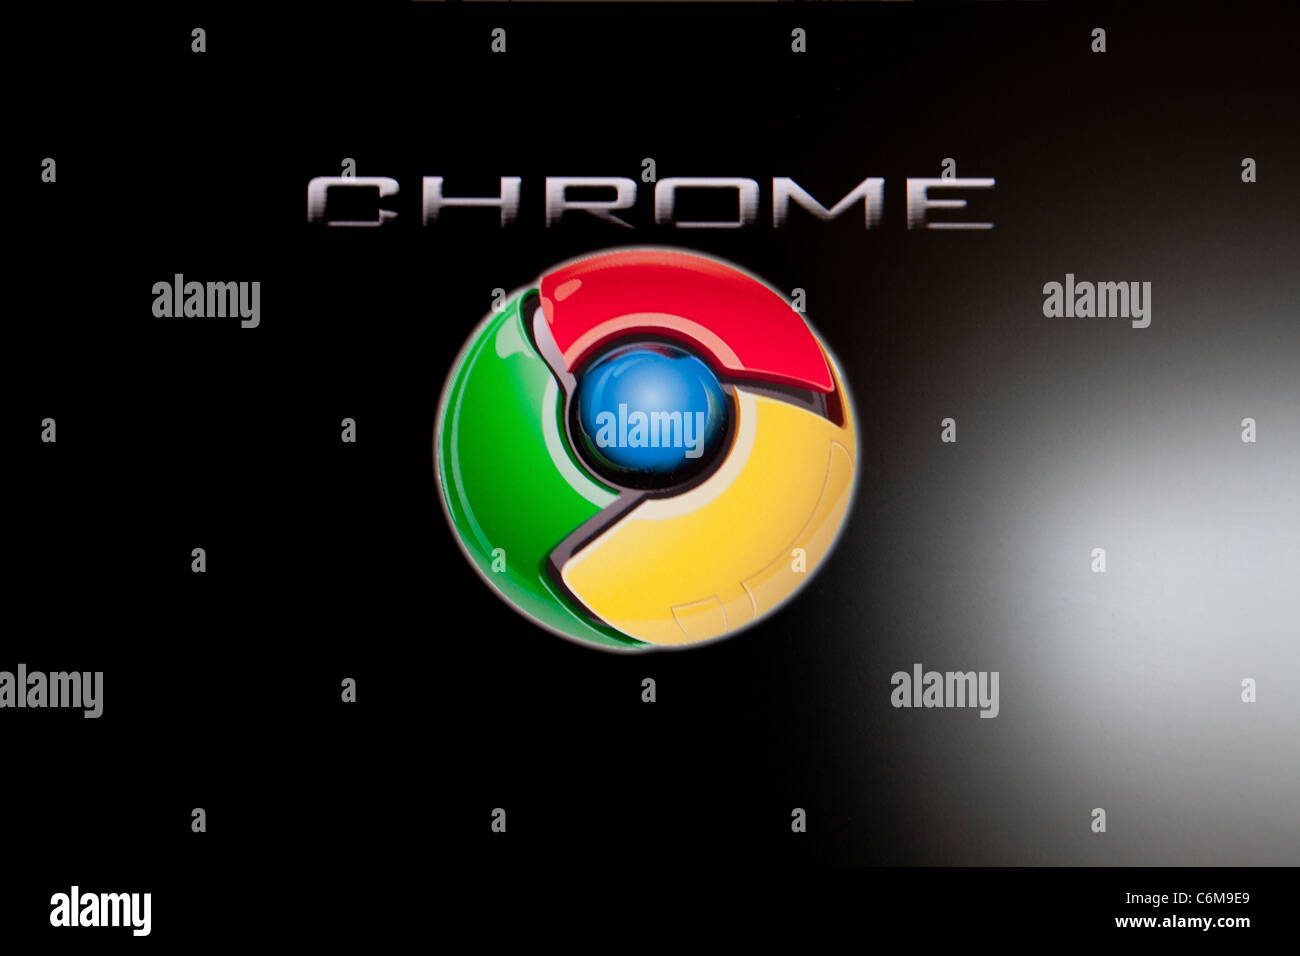 Google chrome logo, logos, trademark internet sensation search engine - Stock Image